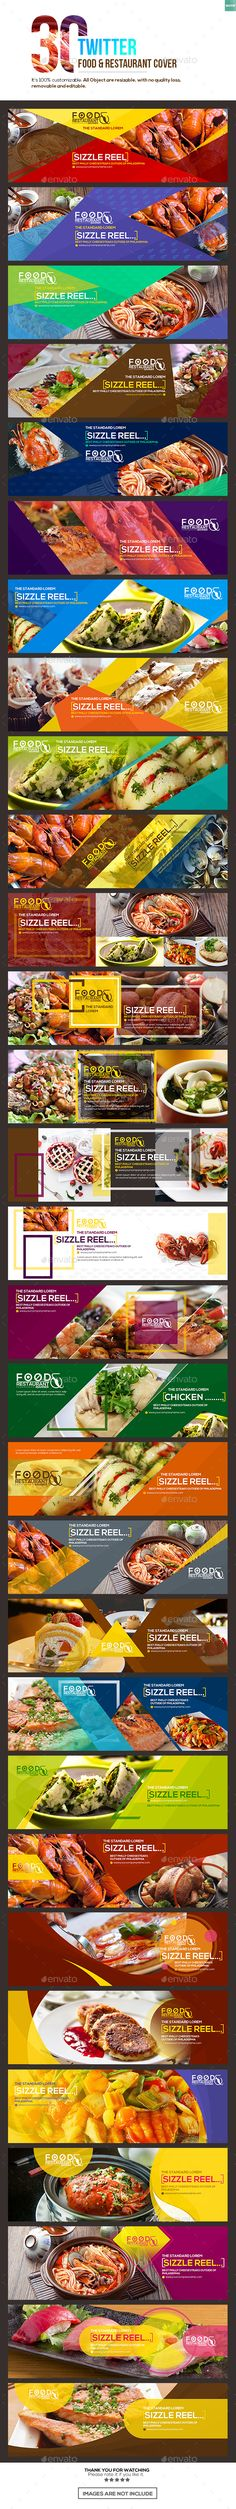 30 Twitter Food & Restaurant Cover  — PSD Template #insta #social media banner • Download ➝ https://graphicriver.net/item/30-twitter-food-restaurant-cover/18487722?ref=pxcr